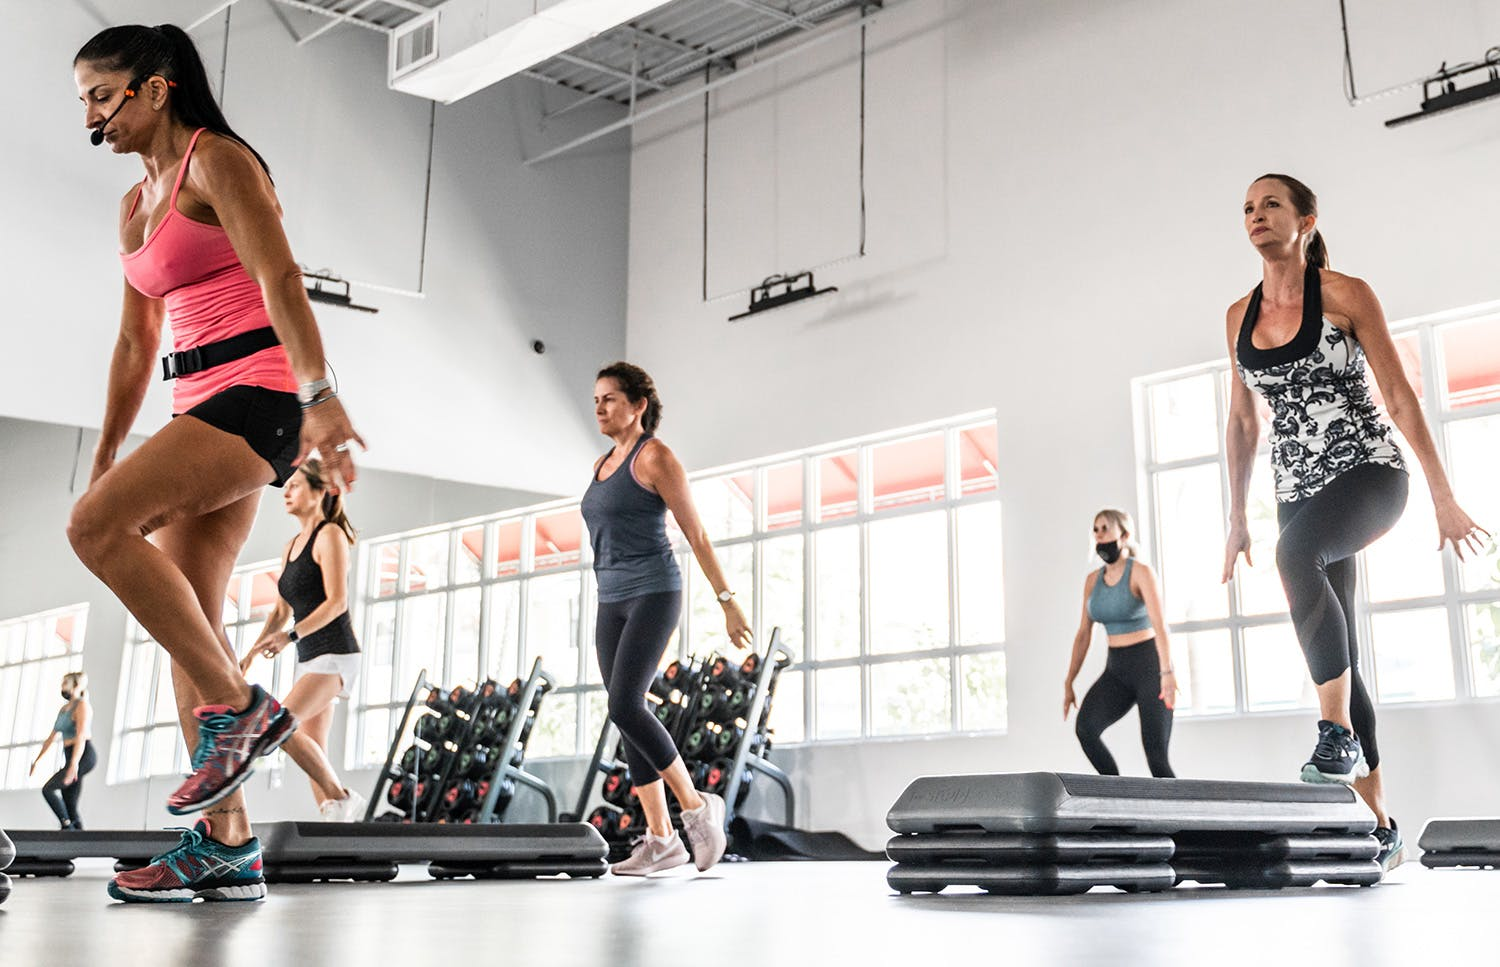 Instructor leading step and sculpt class at the gym